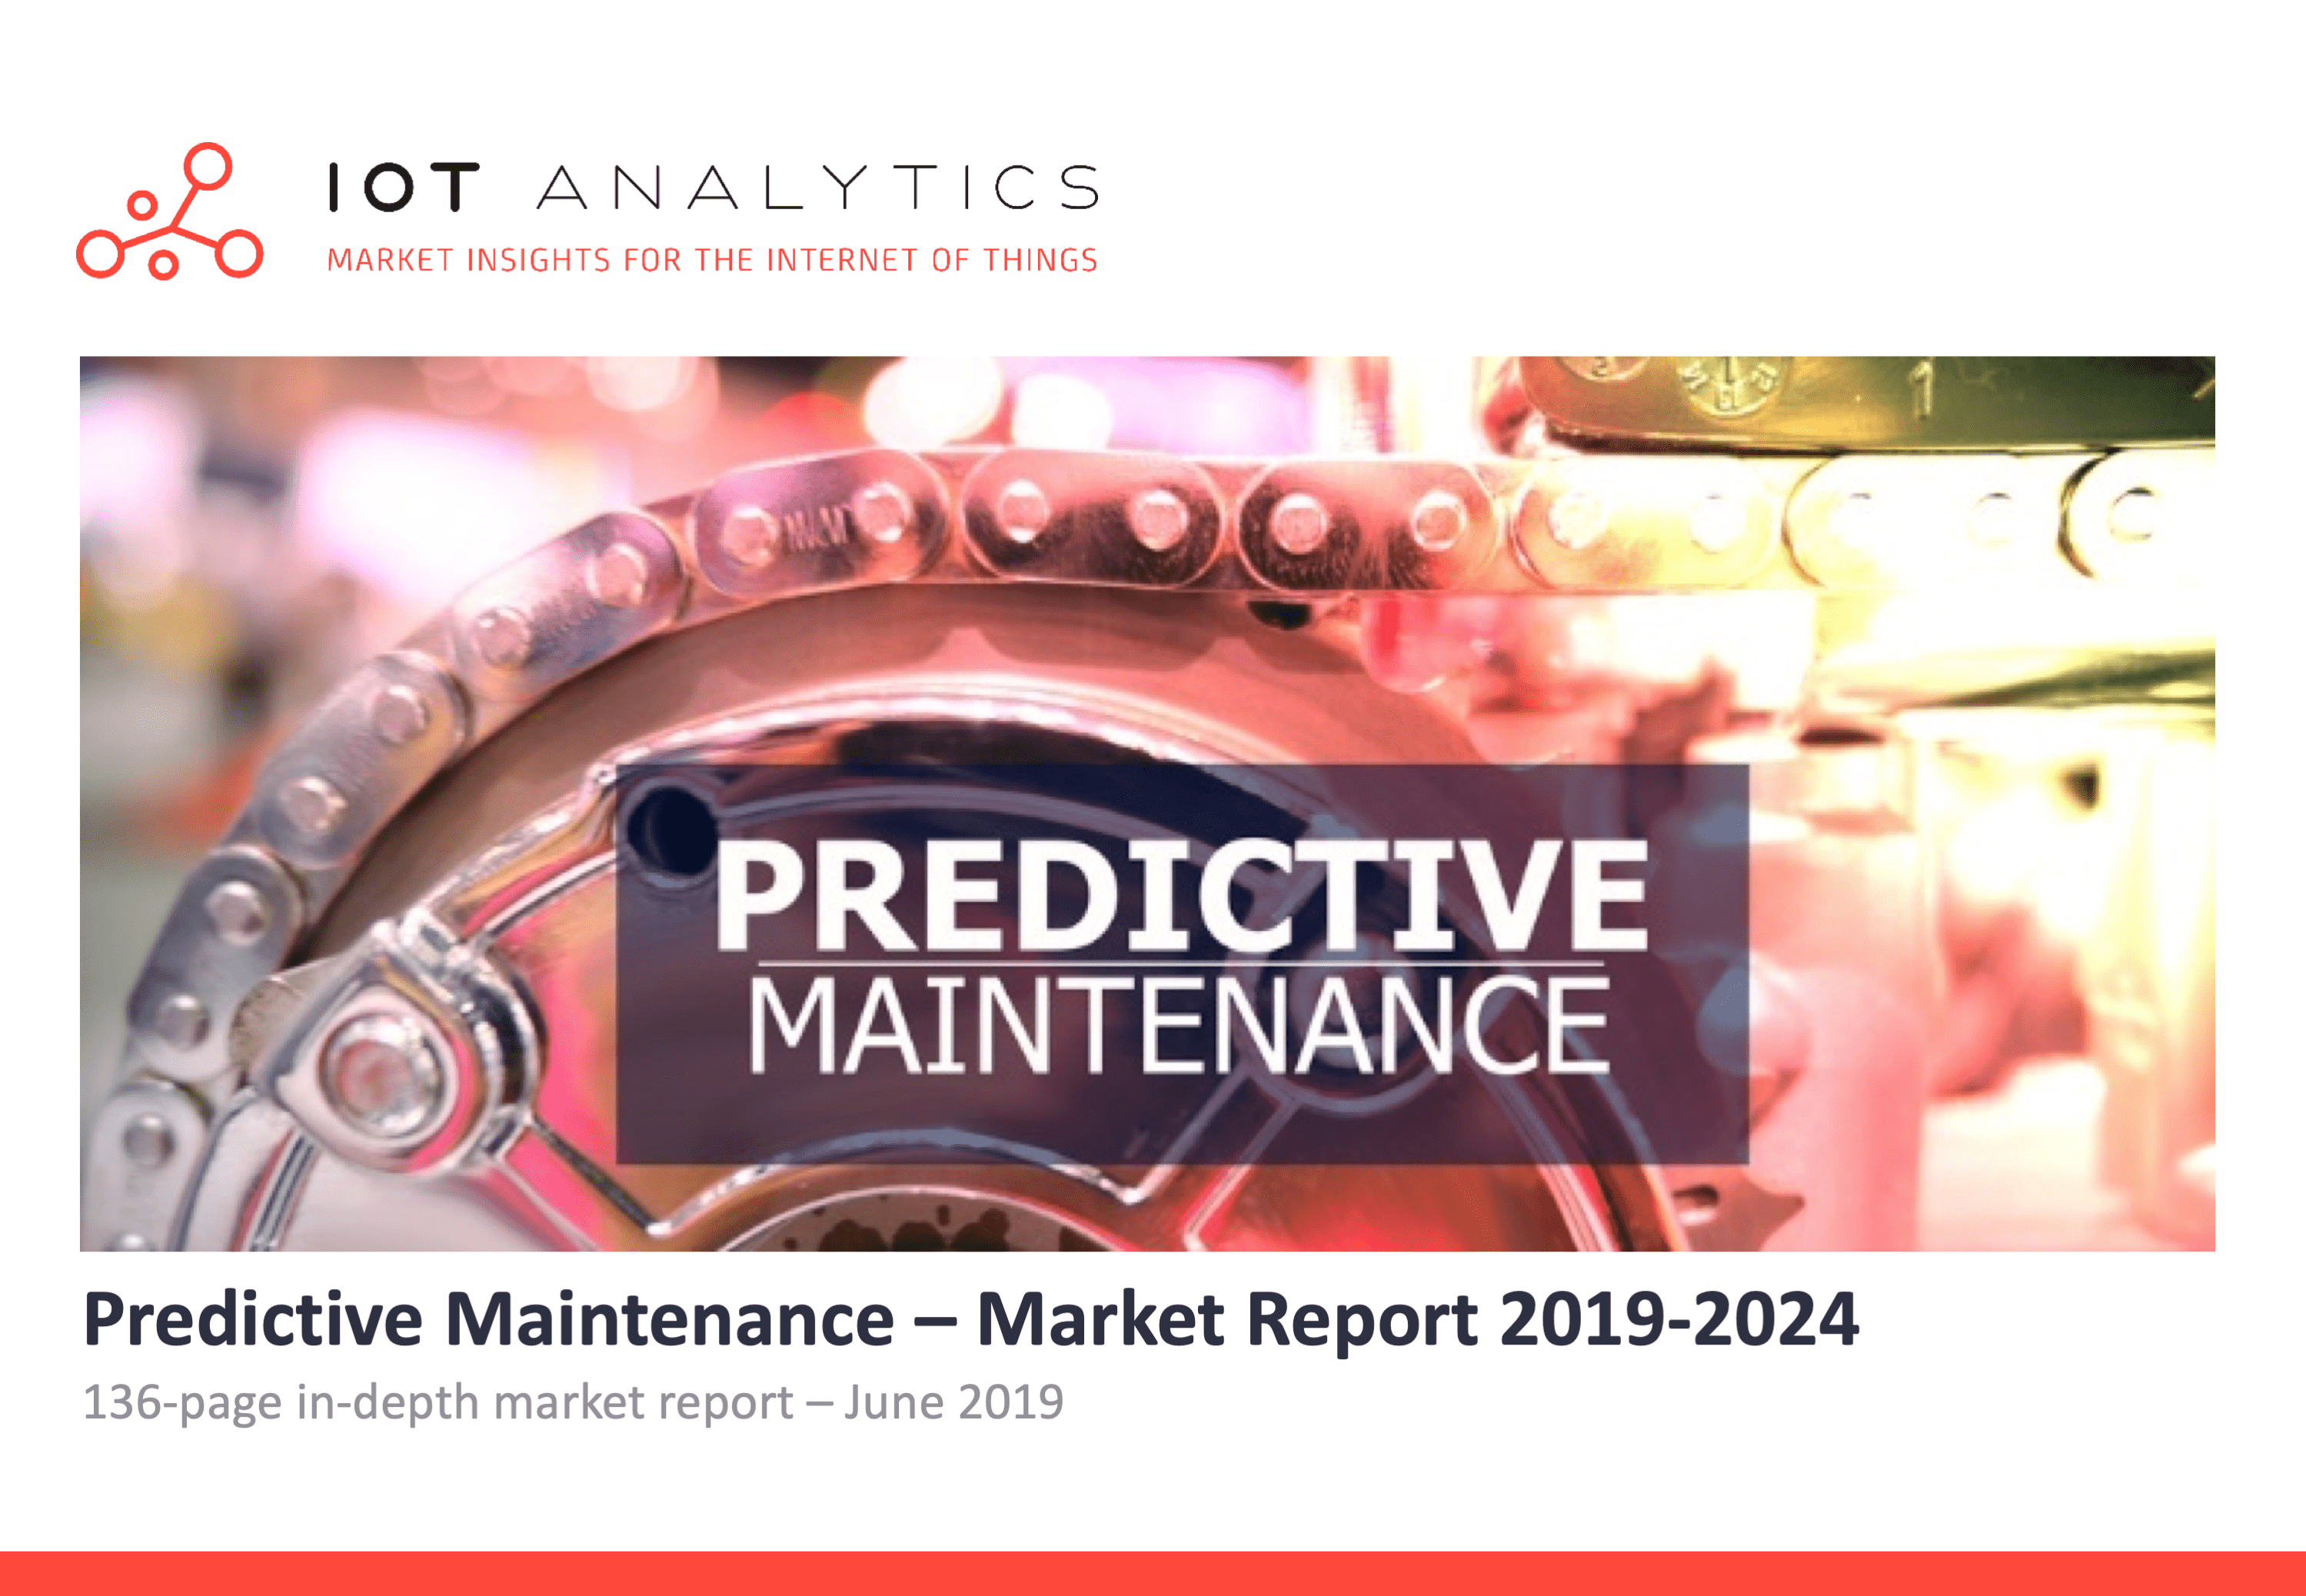 Predictive Maintenance Report 2019-2024